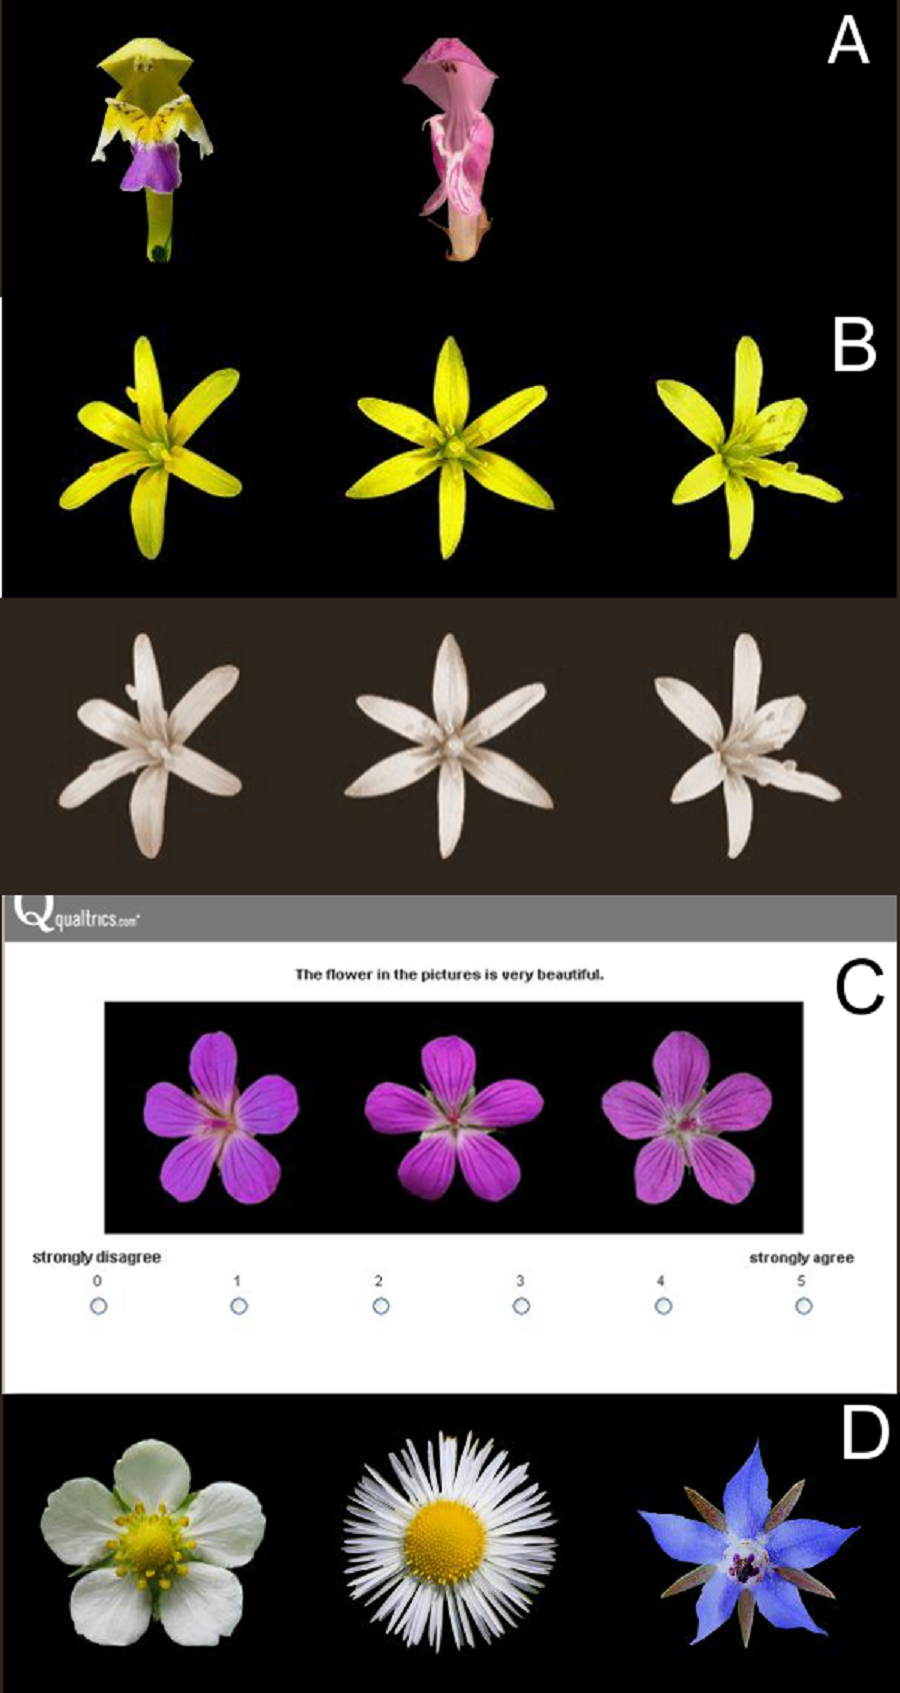 What flowers do we like the influence of shape and color on the download full size image izmirmasajfo Choice Image